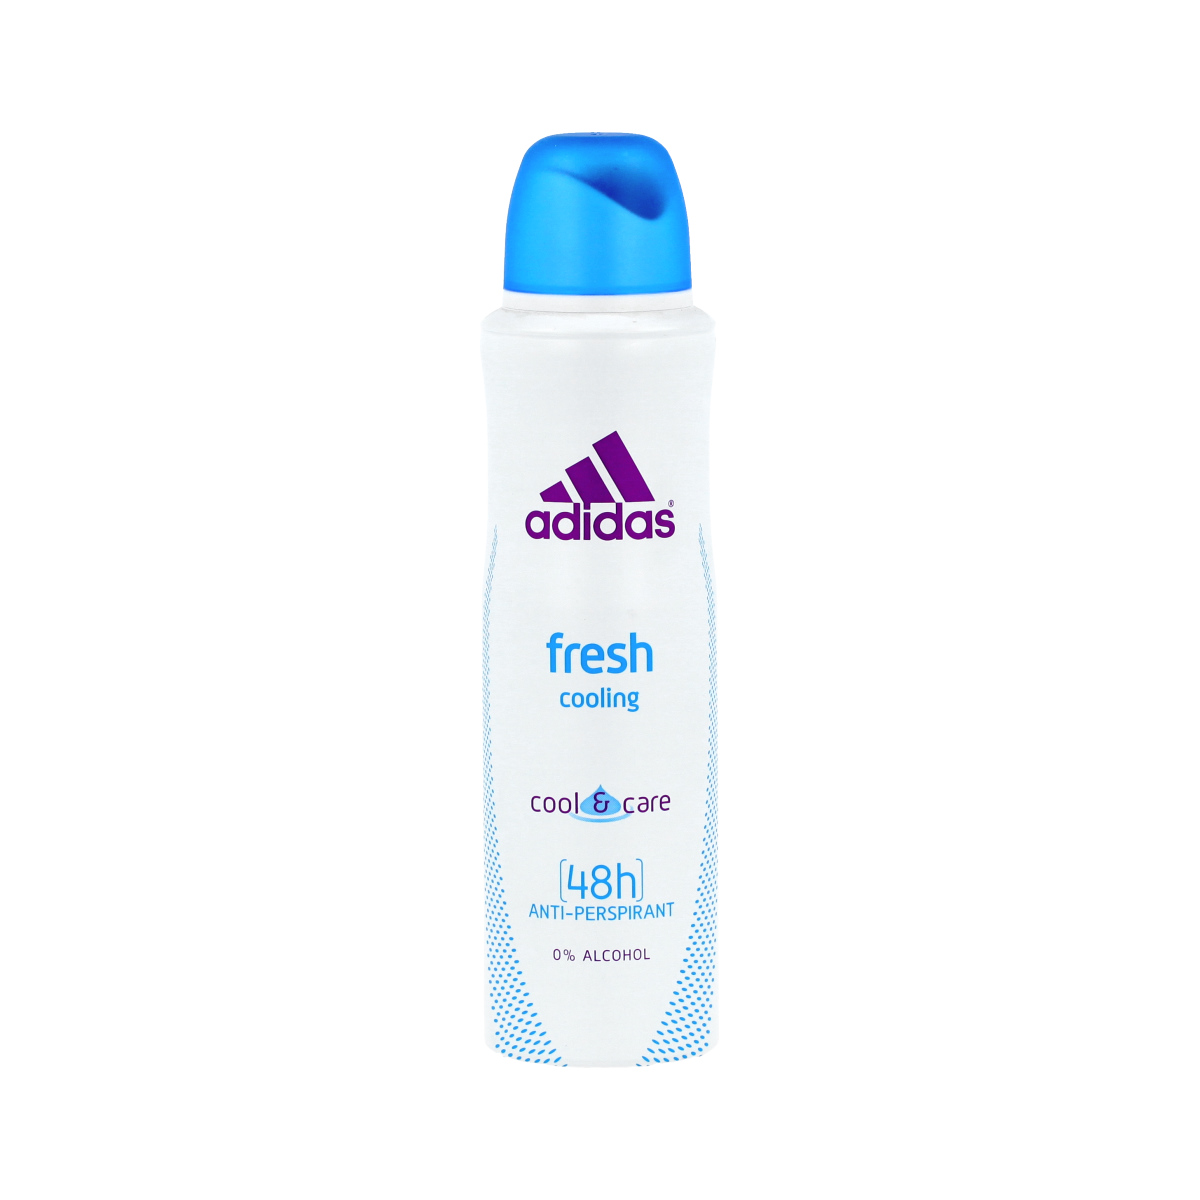 Adidas Cool and Care Fresh Cooling Deospray 150 ml 73431